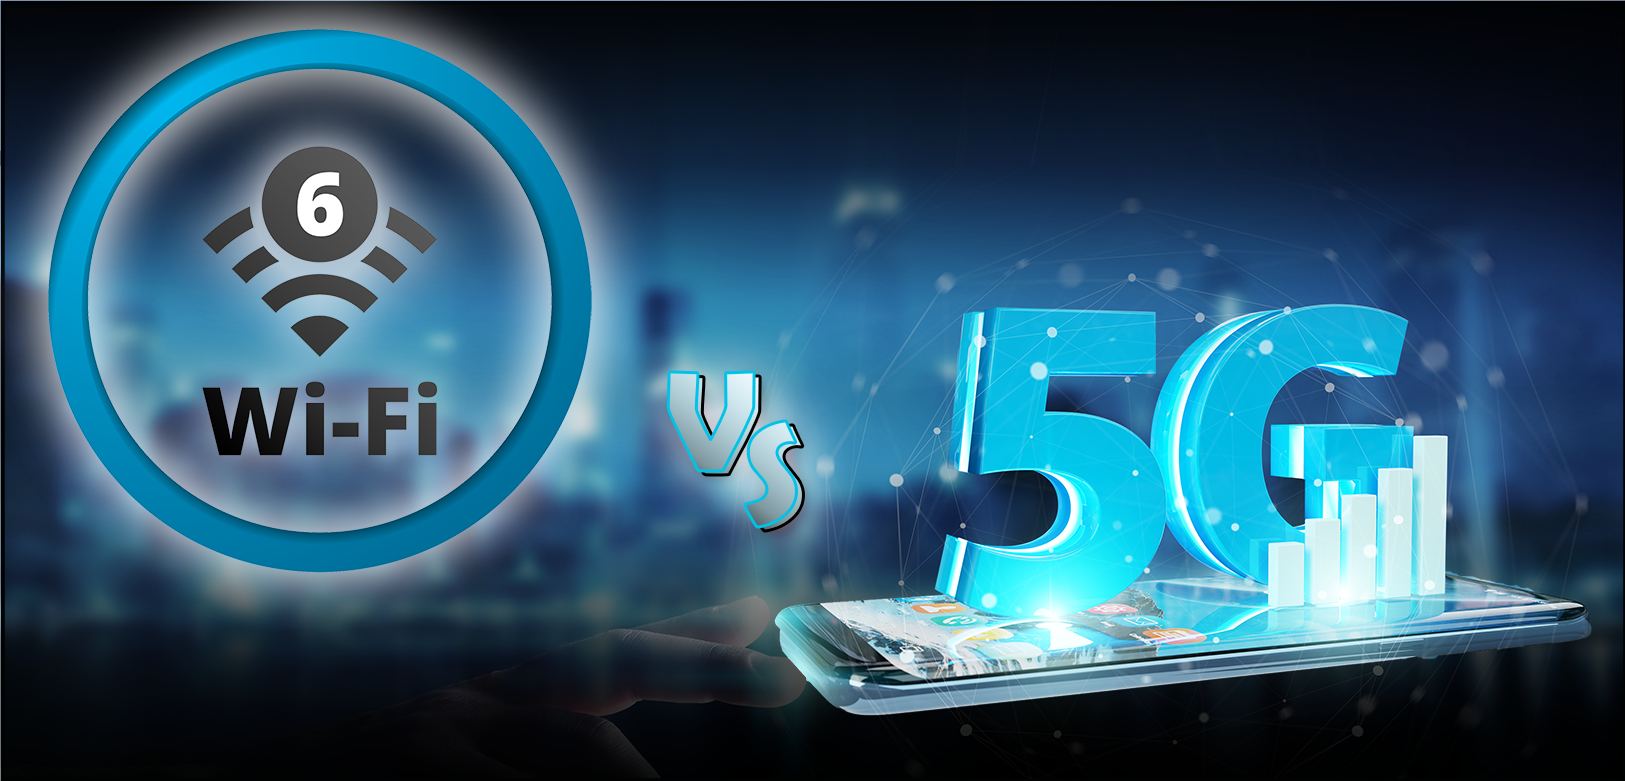 Fifth generation cellular data vs Wireless Internet generation 6